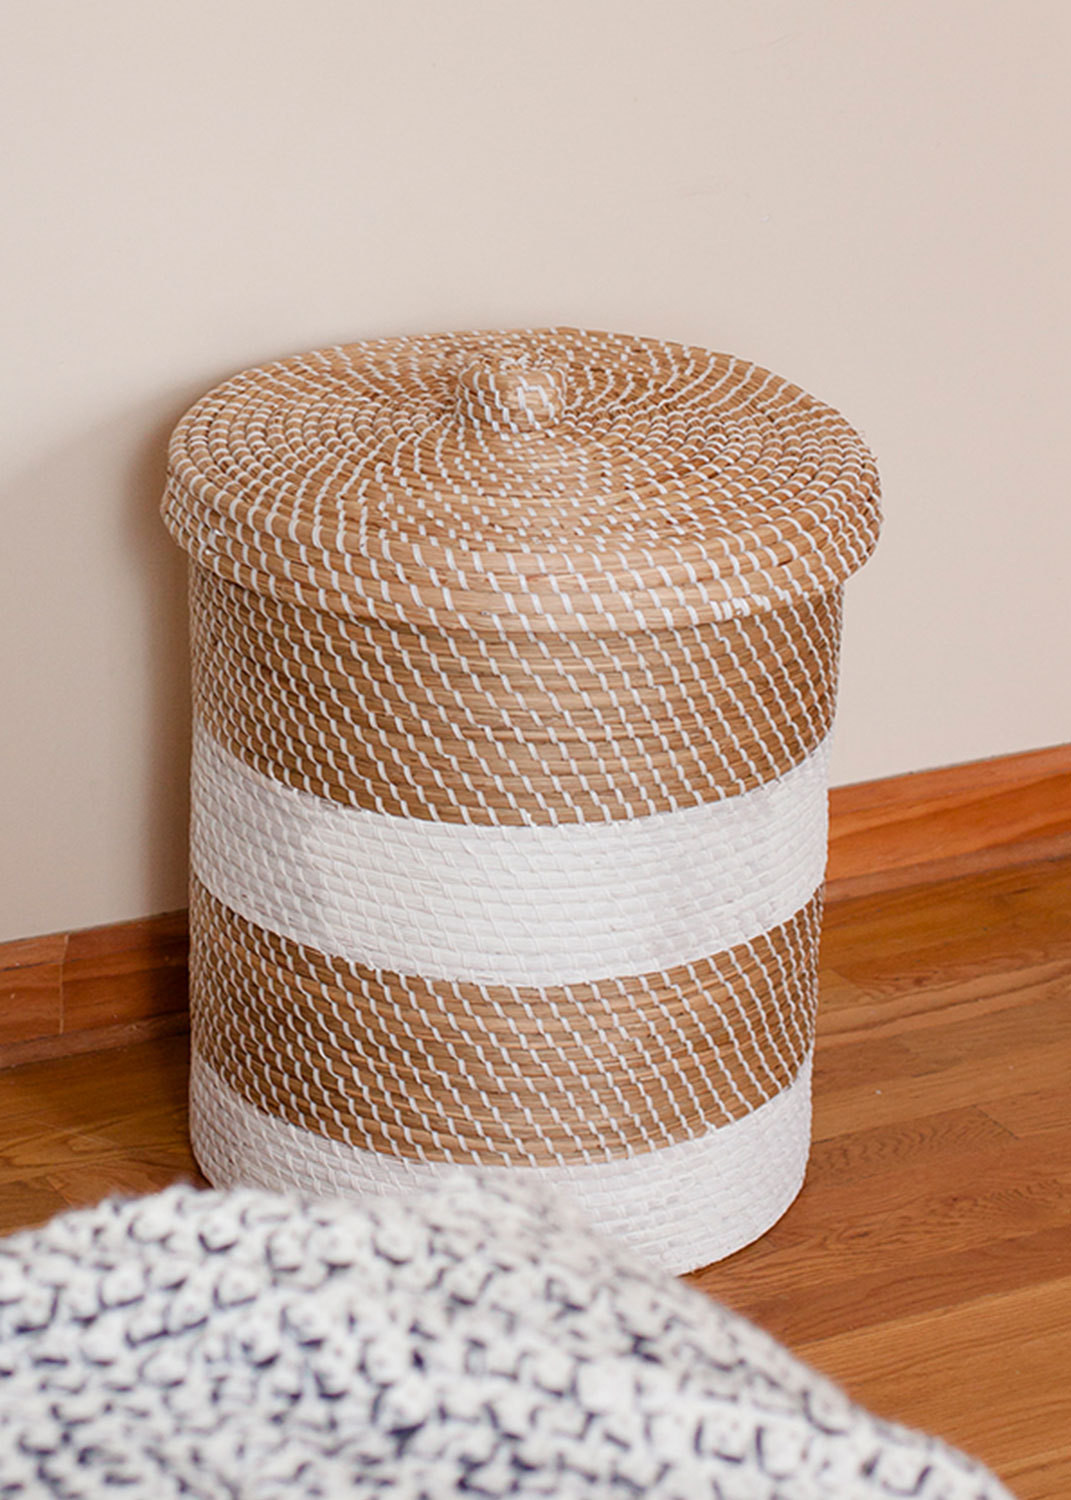 """A<a  target=""""_blank"""" href=""""http://www.zarahome.com/gb/en/decoration/baskets-c1090527p4228089.html"""">Zara Home</a>basket adds a hit of texture to one corner."""